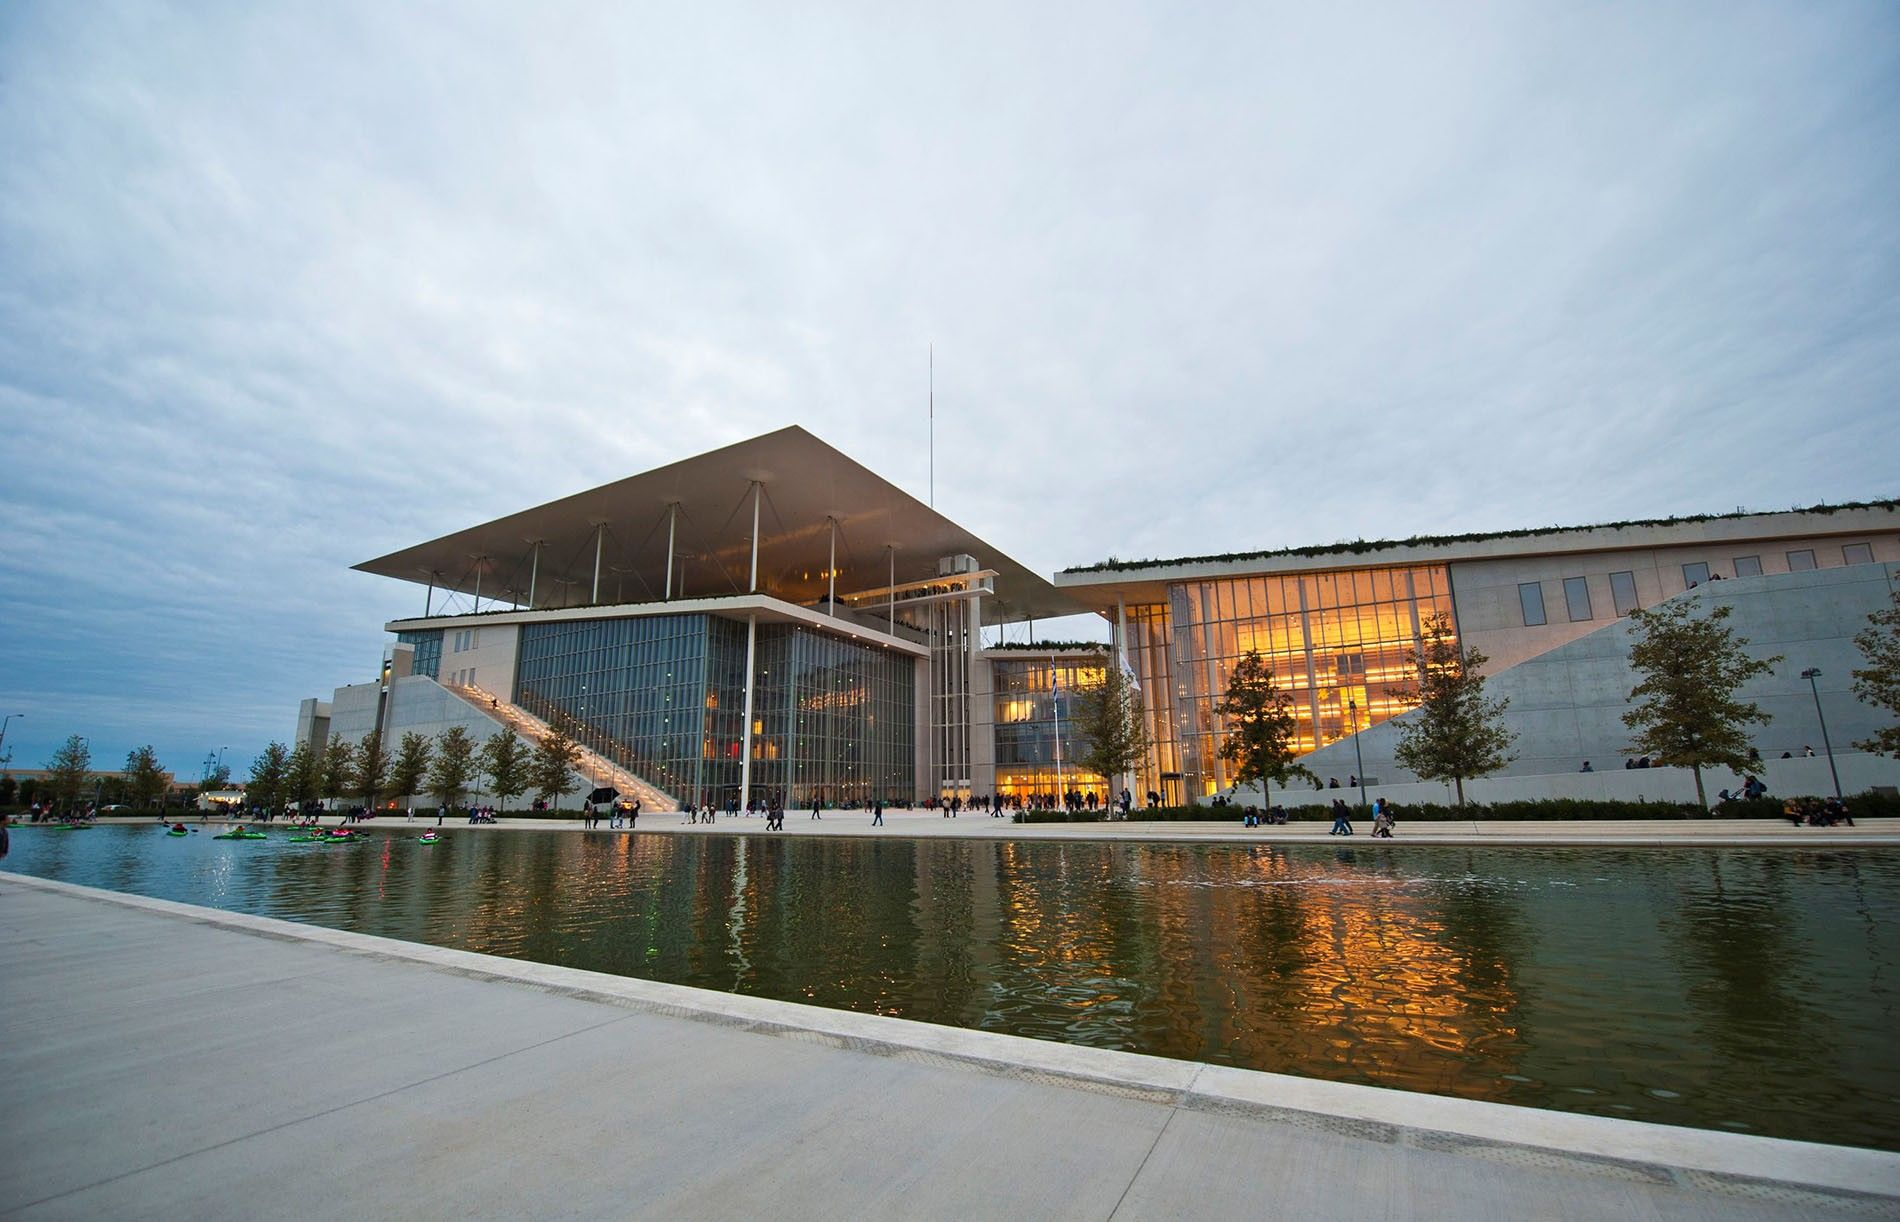 Situated next to the city's waterfront at Faliro Bay, the Stavros Niarchos Foundation Cultural Center houses ...